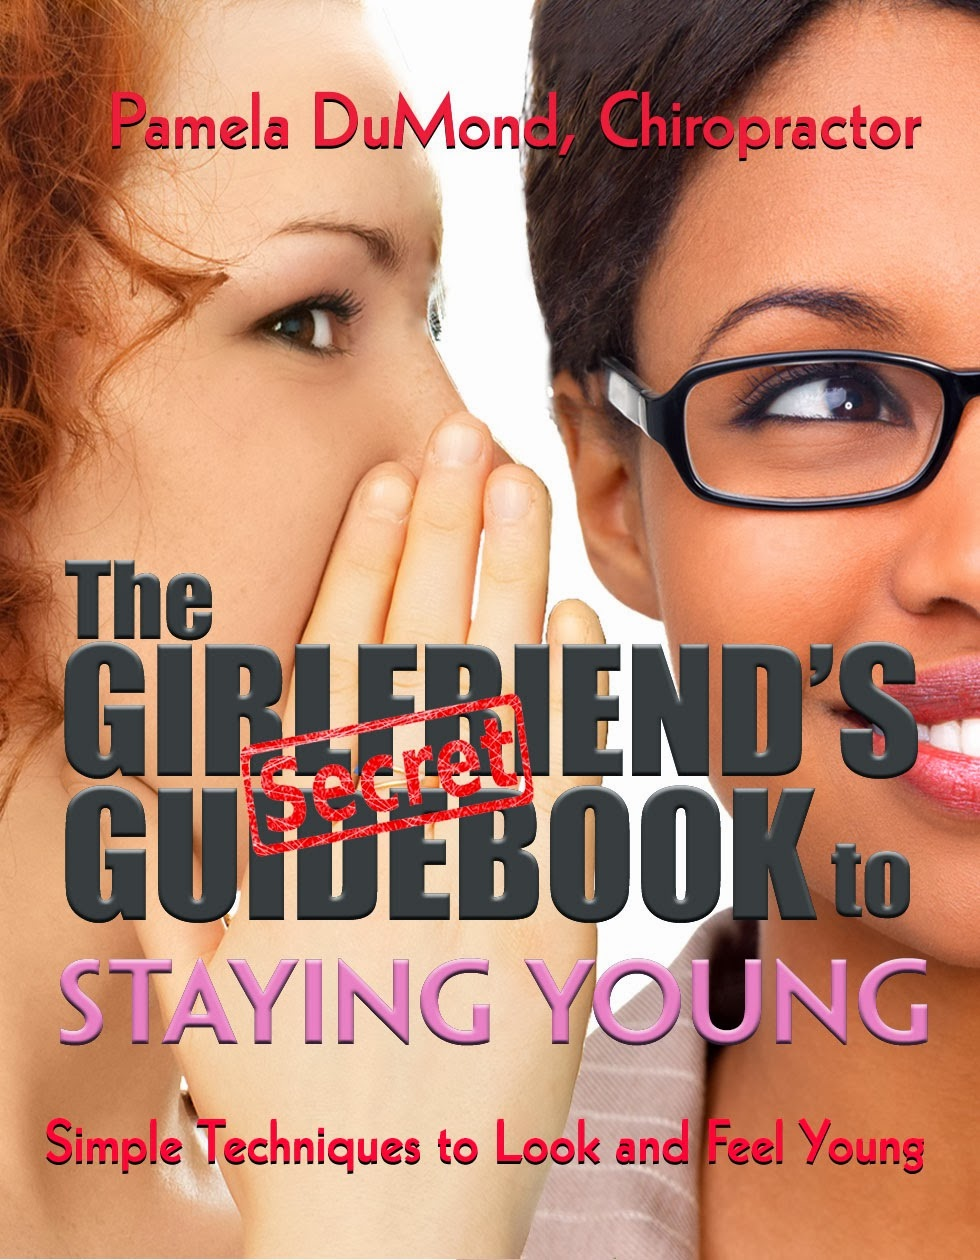 The Girlfriend's Guidebook to Staying Young: Simple Techniques to Look and Feel Young